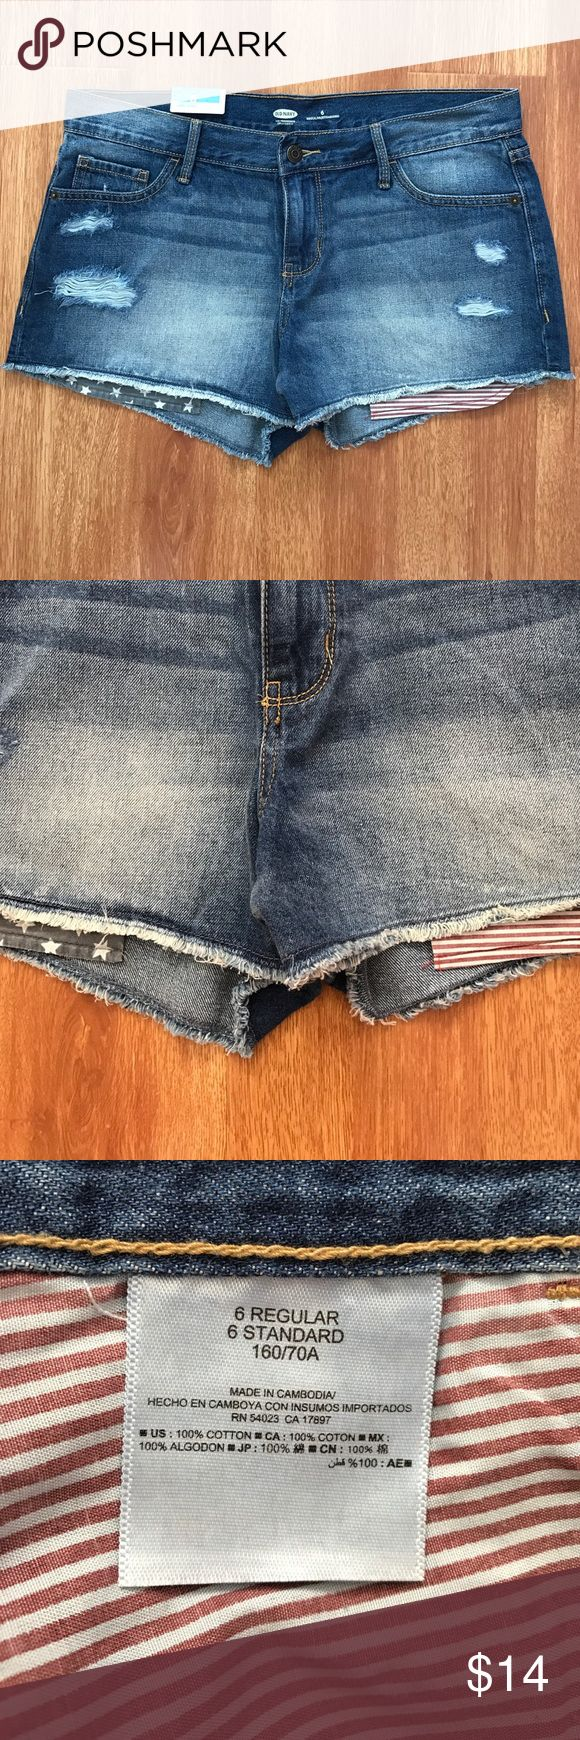 NWT Old Navy USA Jean Shorts Old Navy cut off Jean shorts with American flag peeking out bottom. New with tags. Old Navy Shorts Jean Shorts